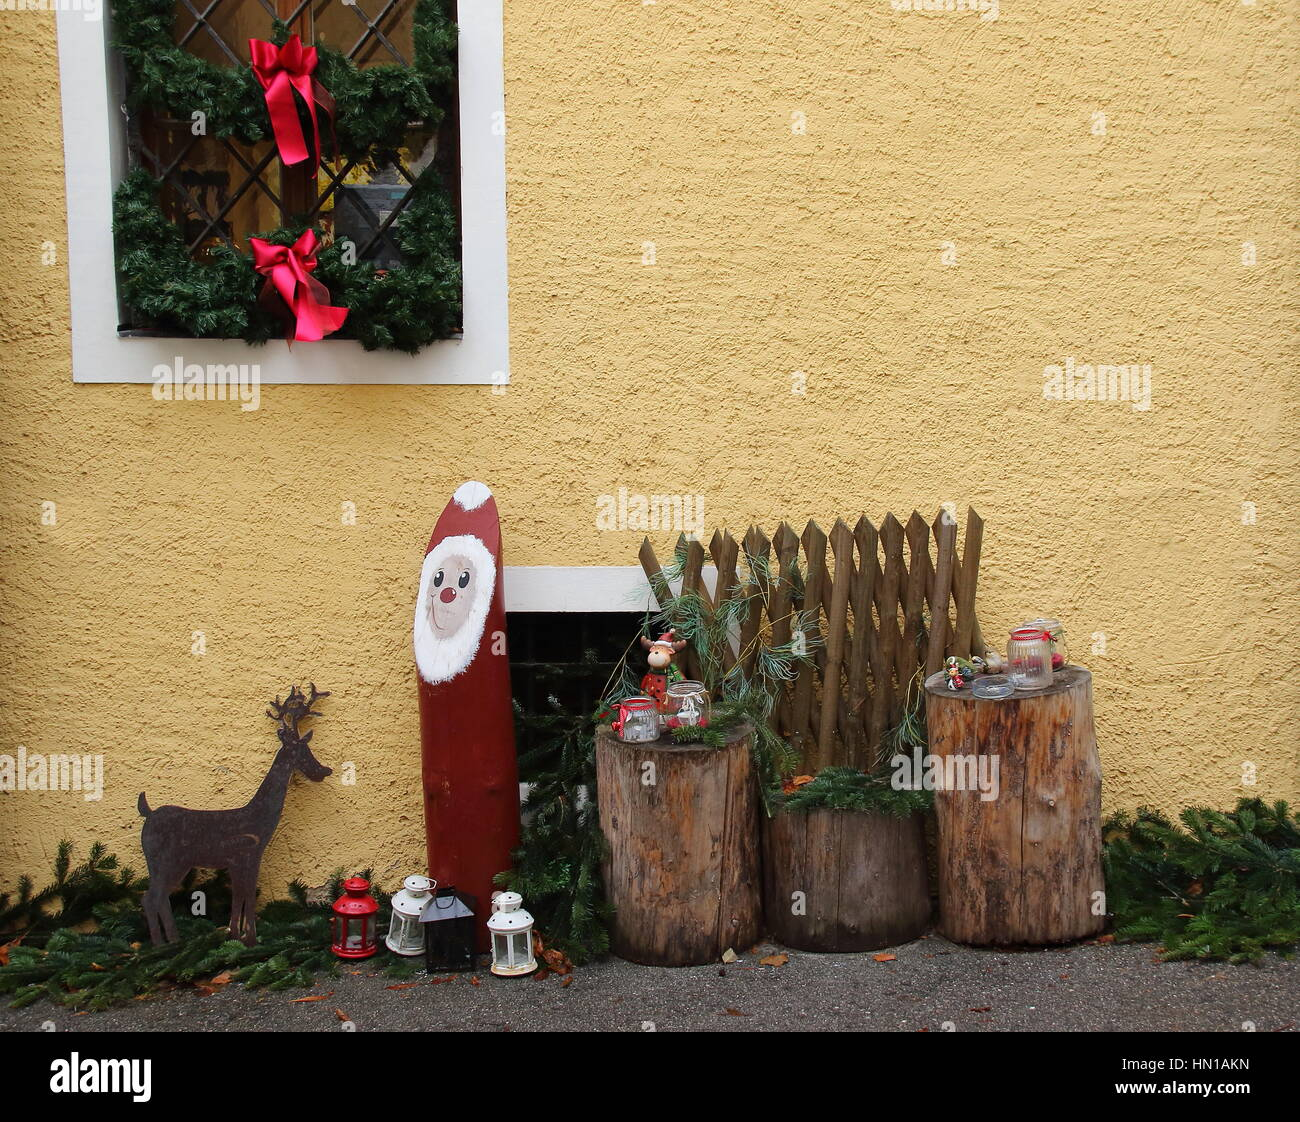 Signs outside a home that the family celebrates the annual Christian festival of Christmas image with copy space - Stock Image